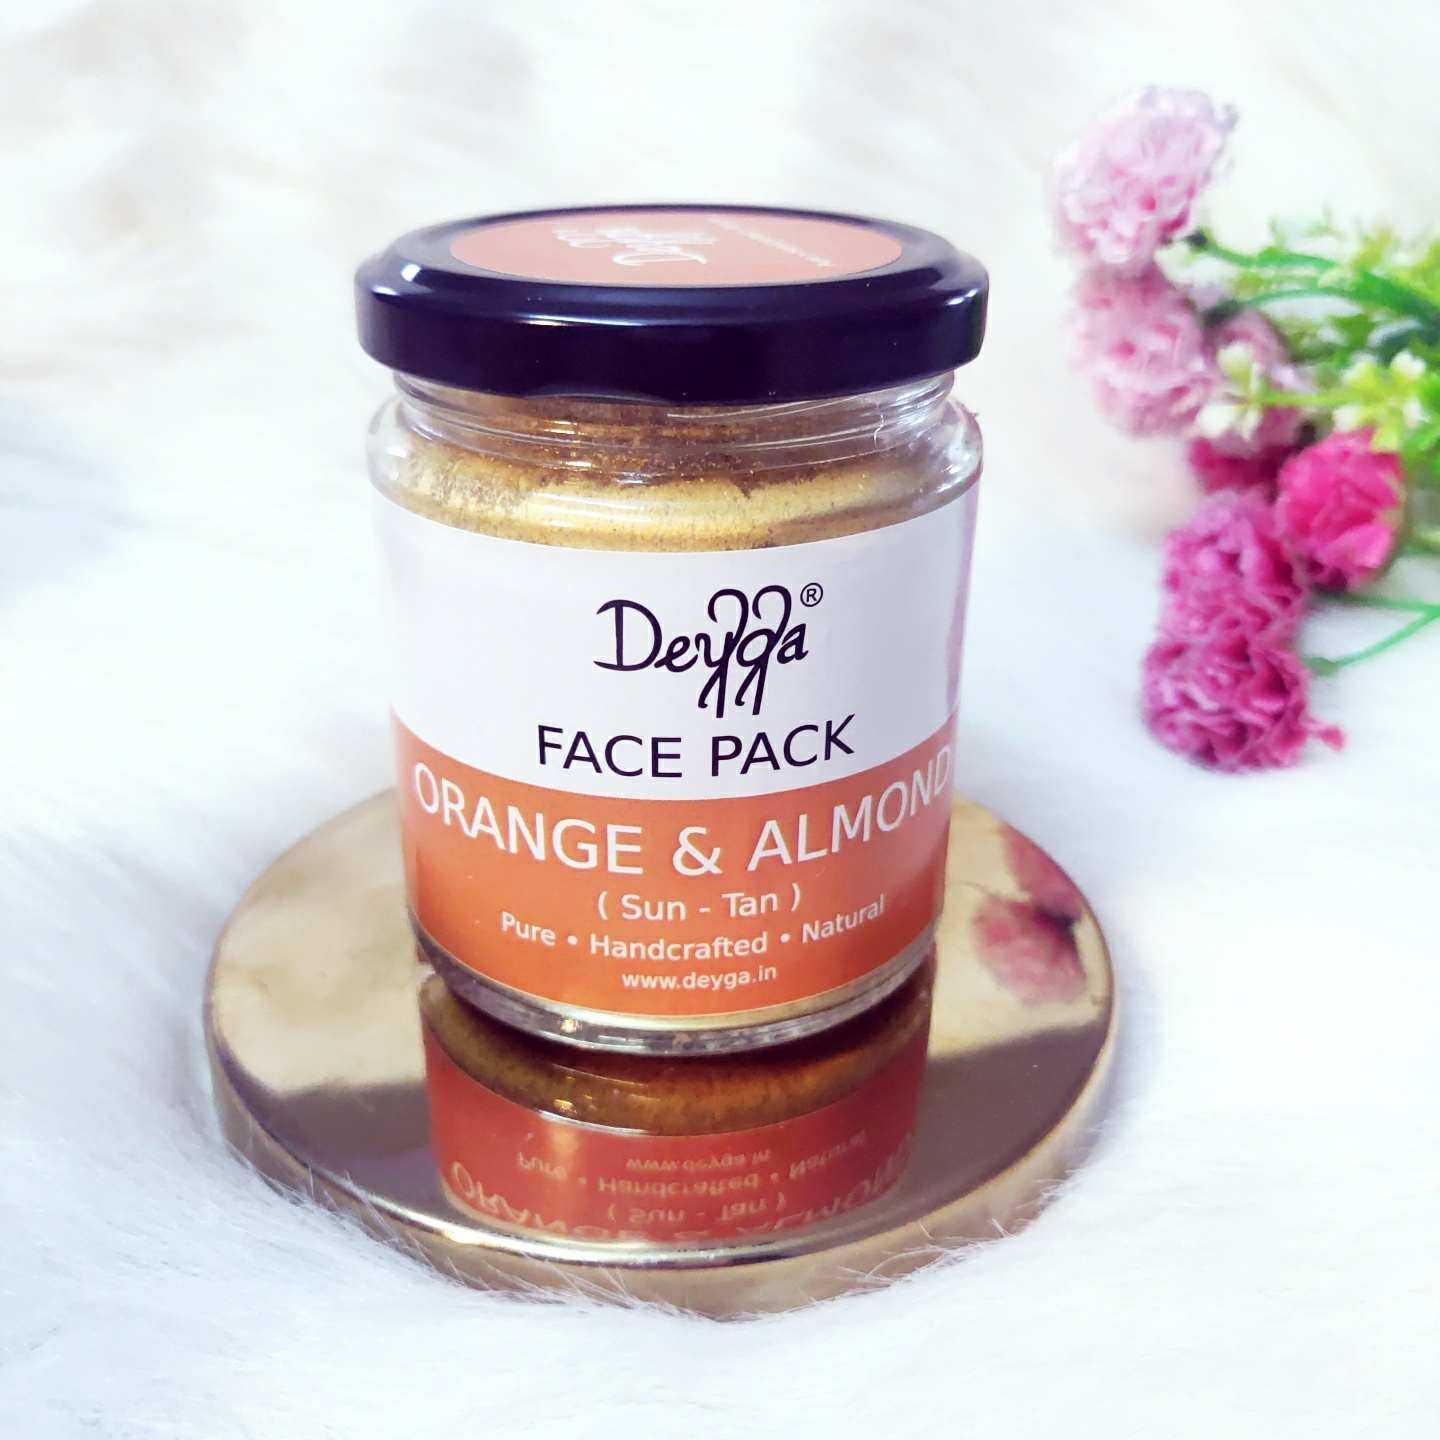 Deyga Products Review: Orange and almond face pack | Rose water | Spinach and Cucmber soap